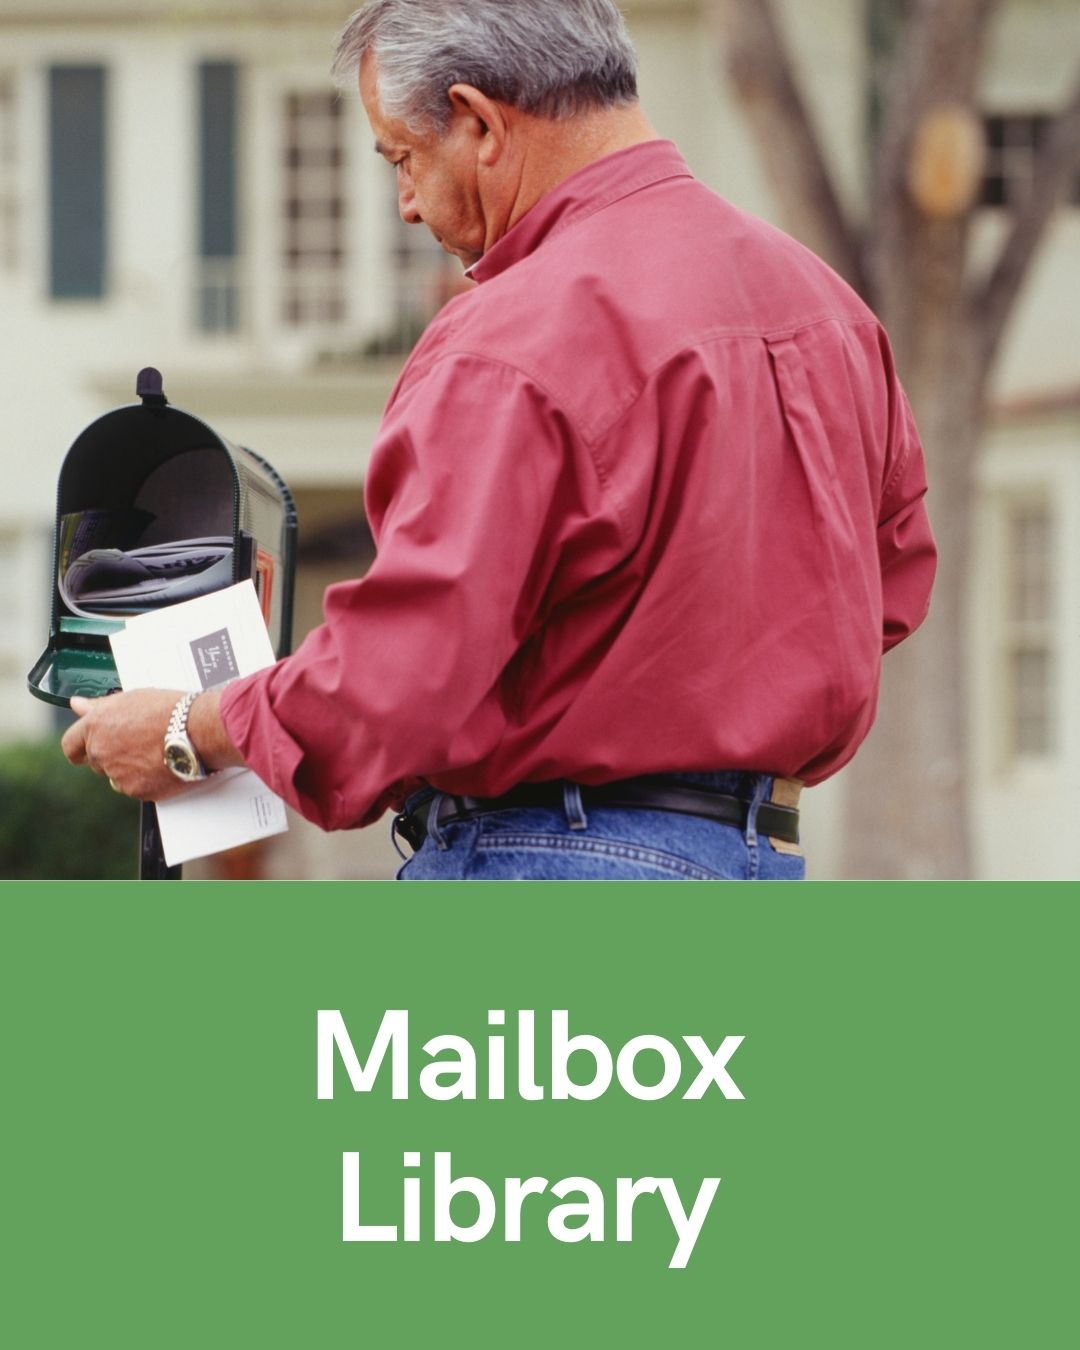 Mailbox Library Service